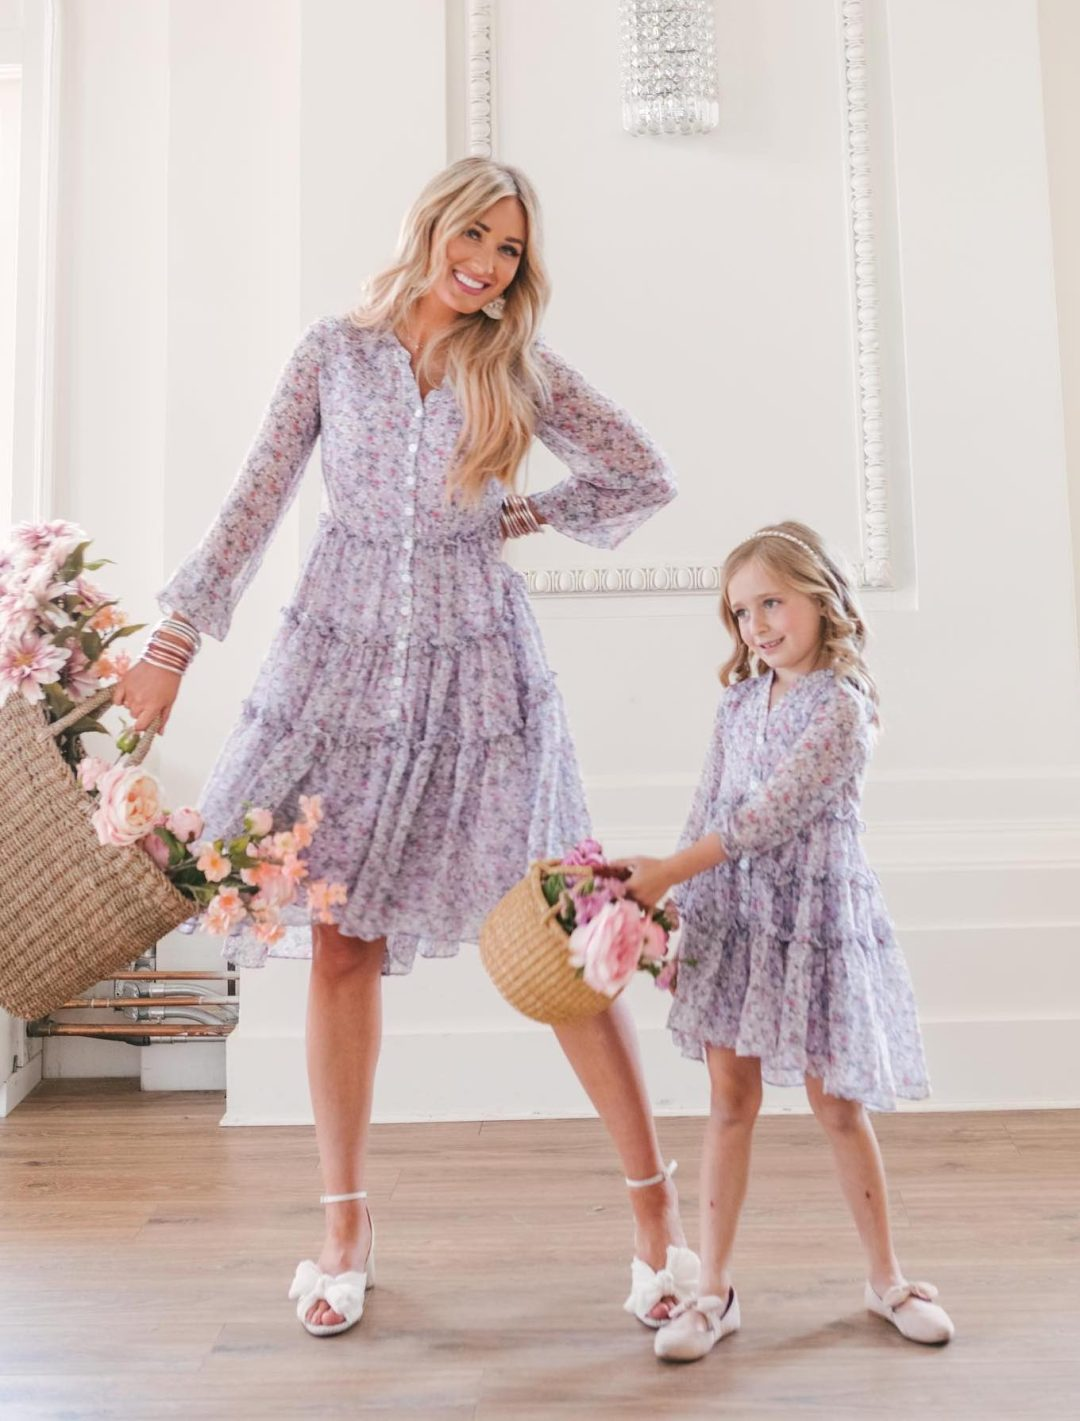 50 Cutest Mommy And Me Outfits To Match With Your Little One